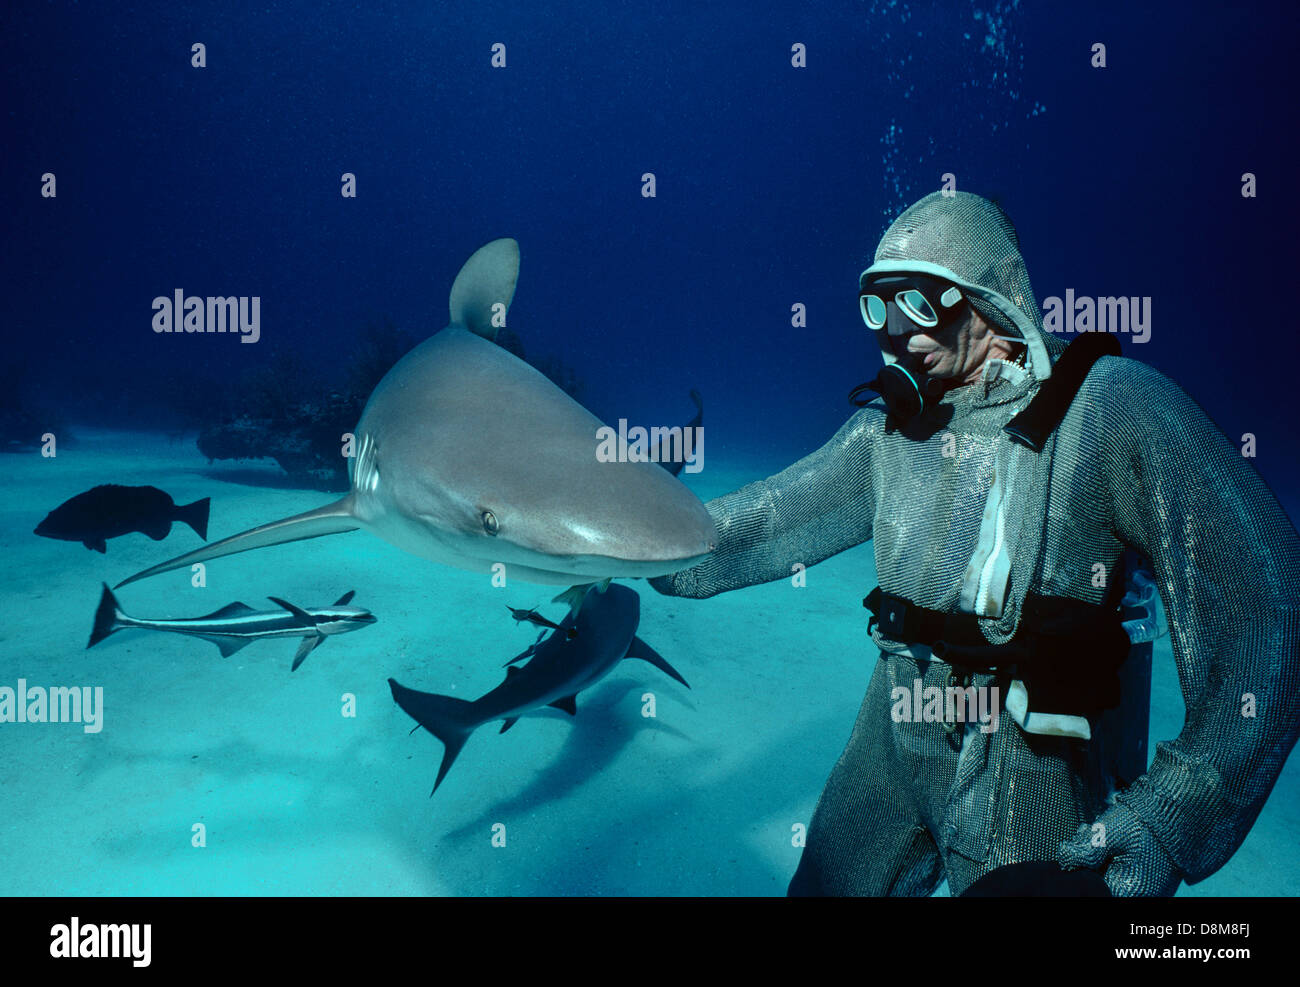 Caribbean reef sharks (Carcharhiunus perezi) and shark handler in chain mail suit. Bahamas, Caribbean Sea - Stock Image